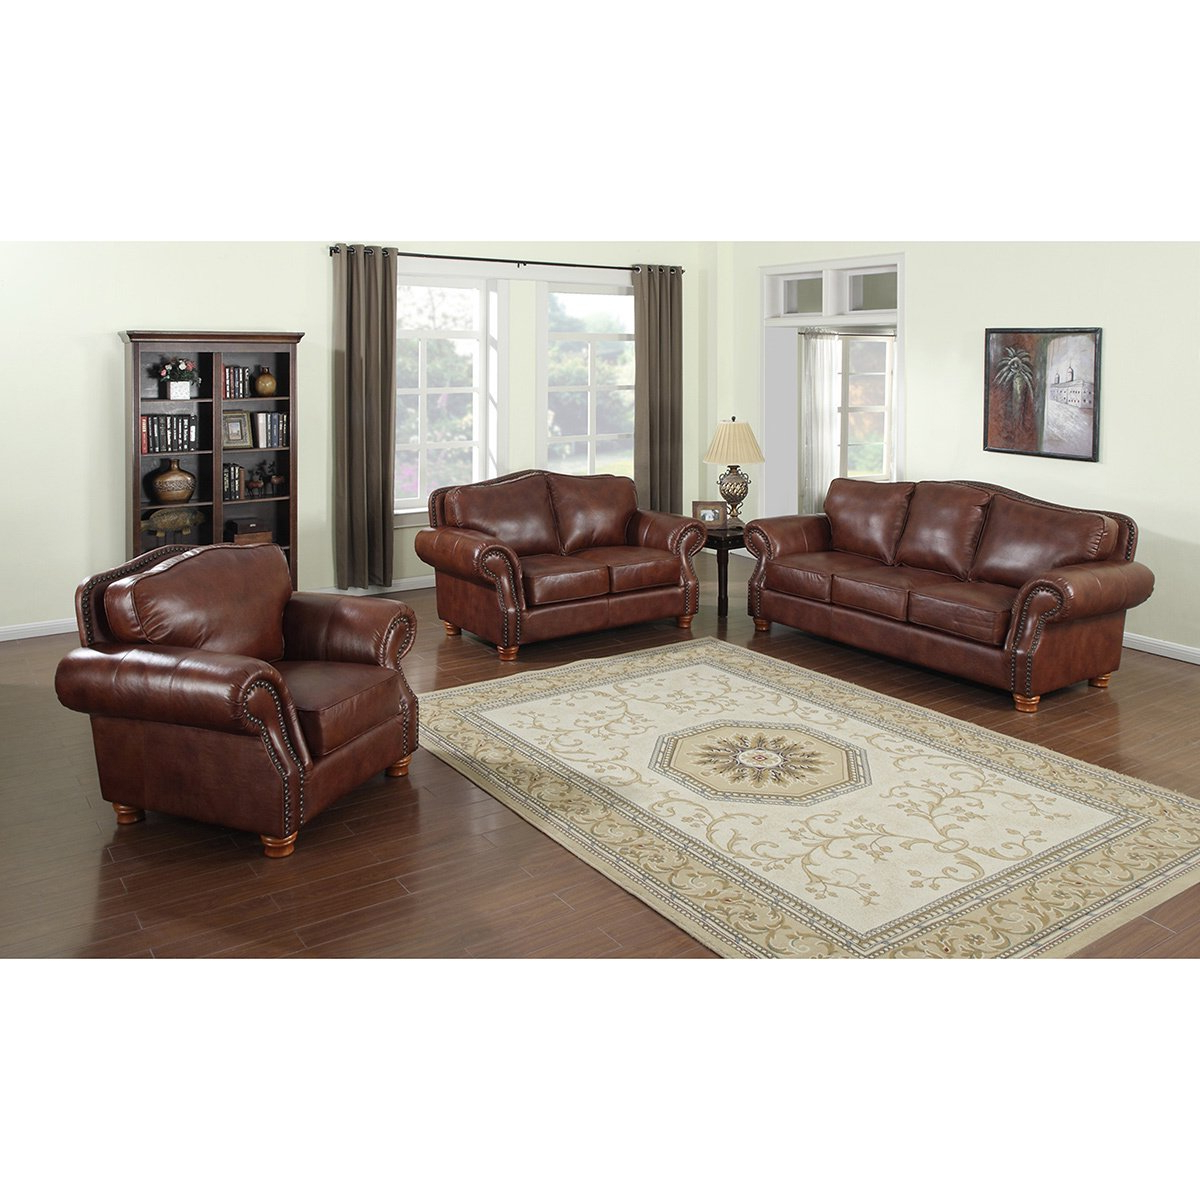 Sofa Loveseat And Chairs For Popular Shop Brandon Distressed Whiskey Italian Leather Sofa, Loveseat And (Gallery 16 of 20)